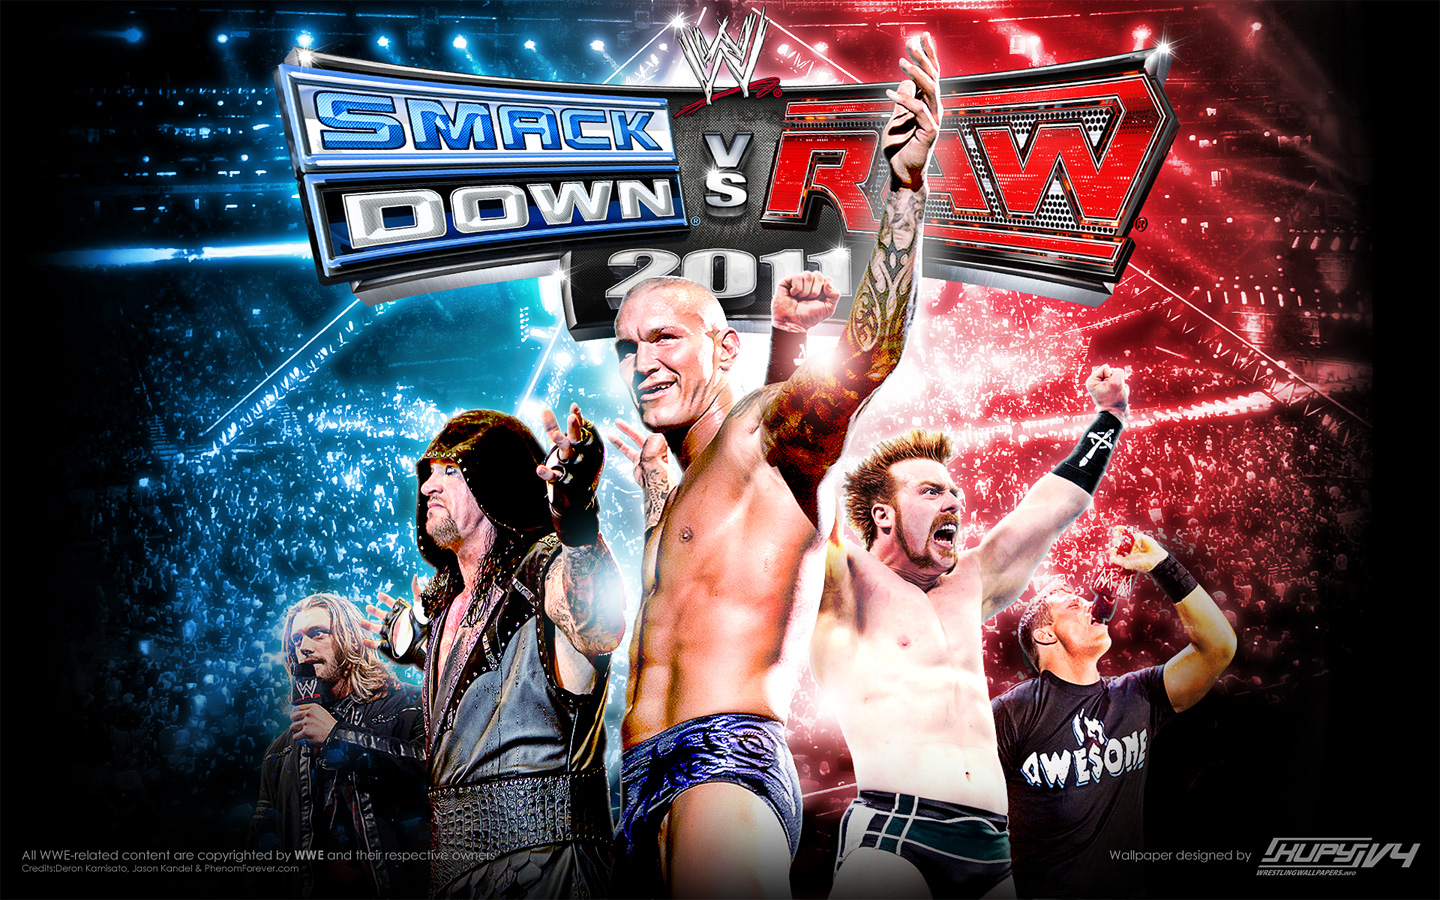 Smackdown Vs Raw 2011 Wallpaper 1440x900